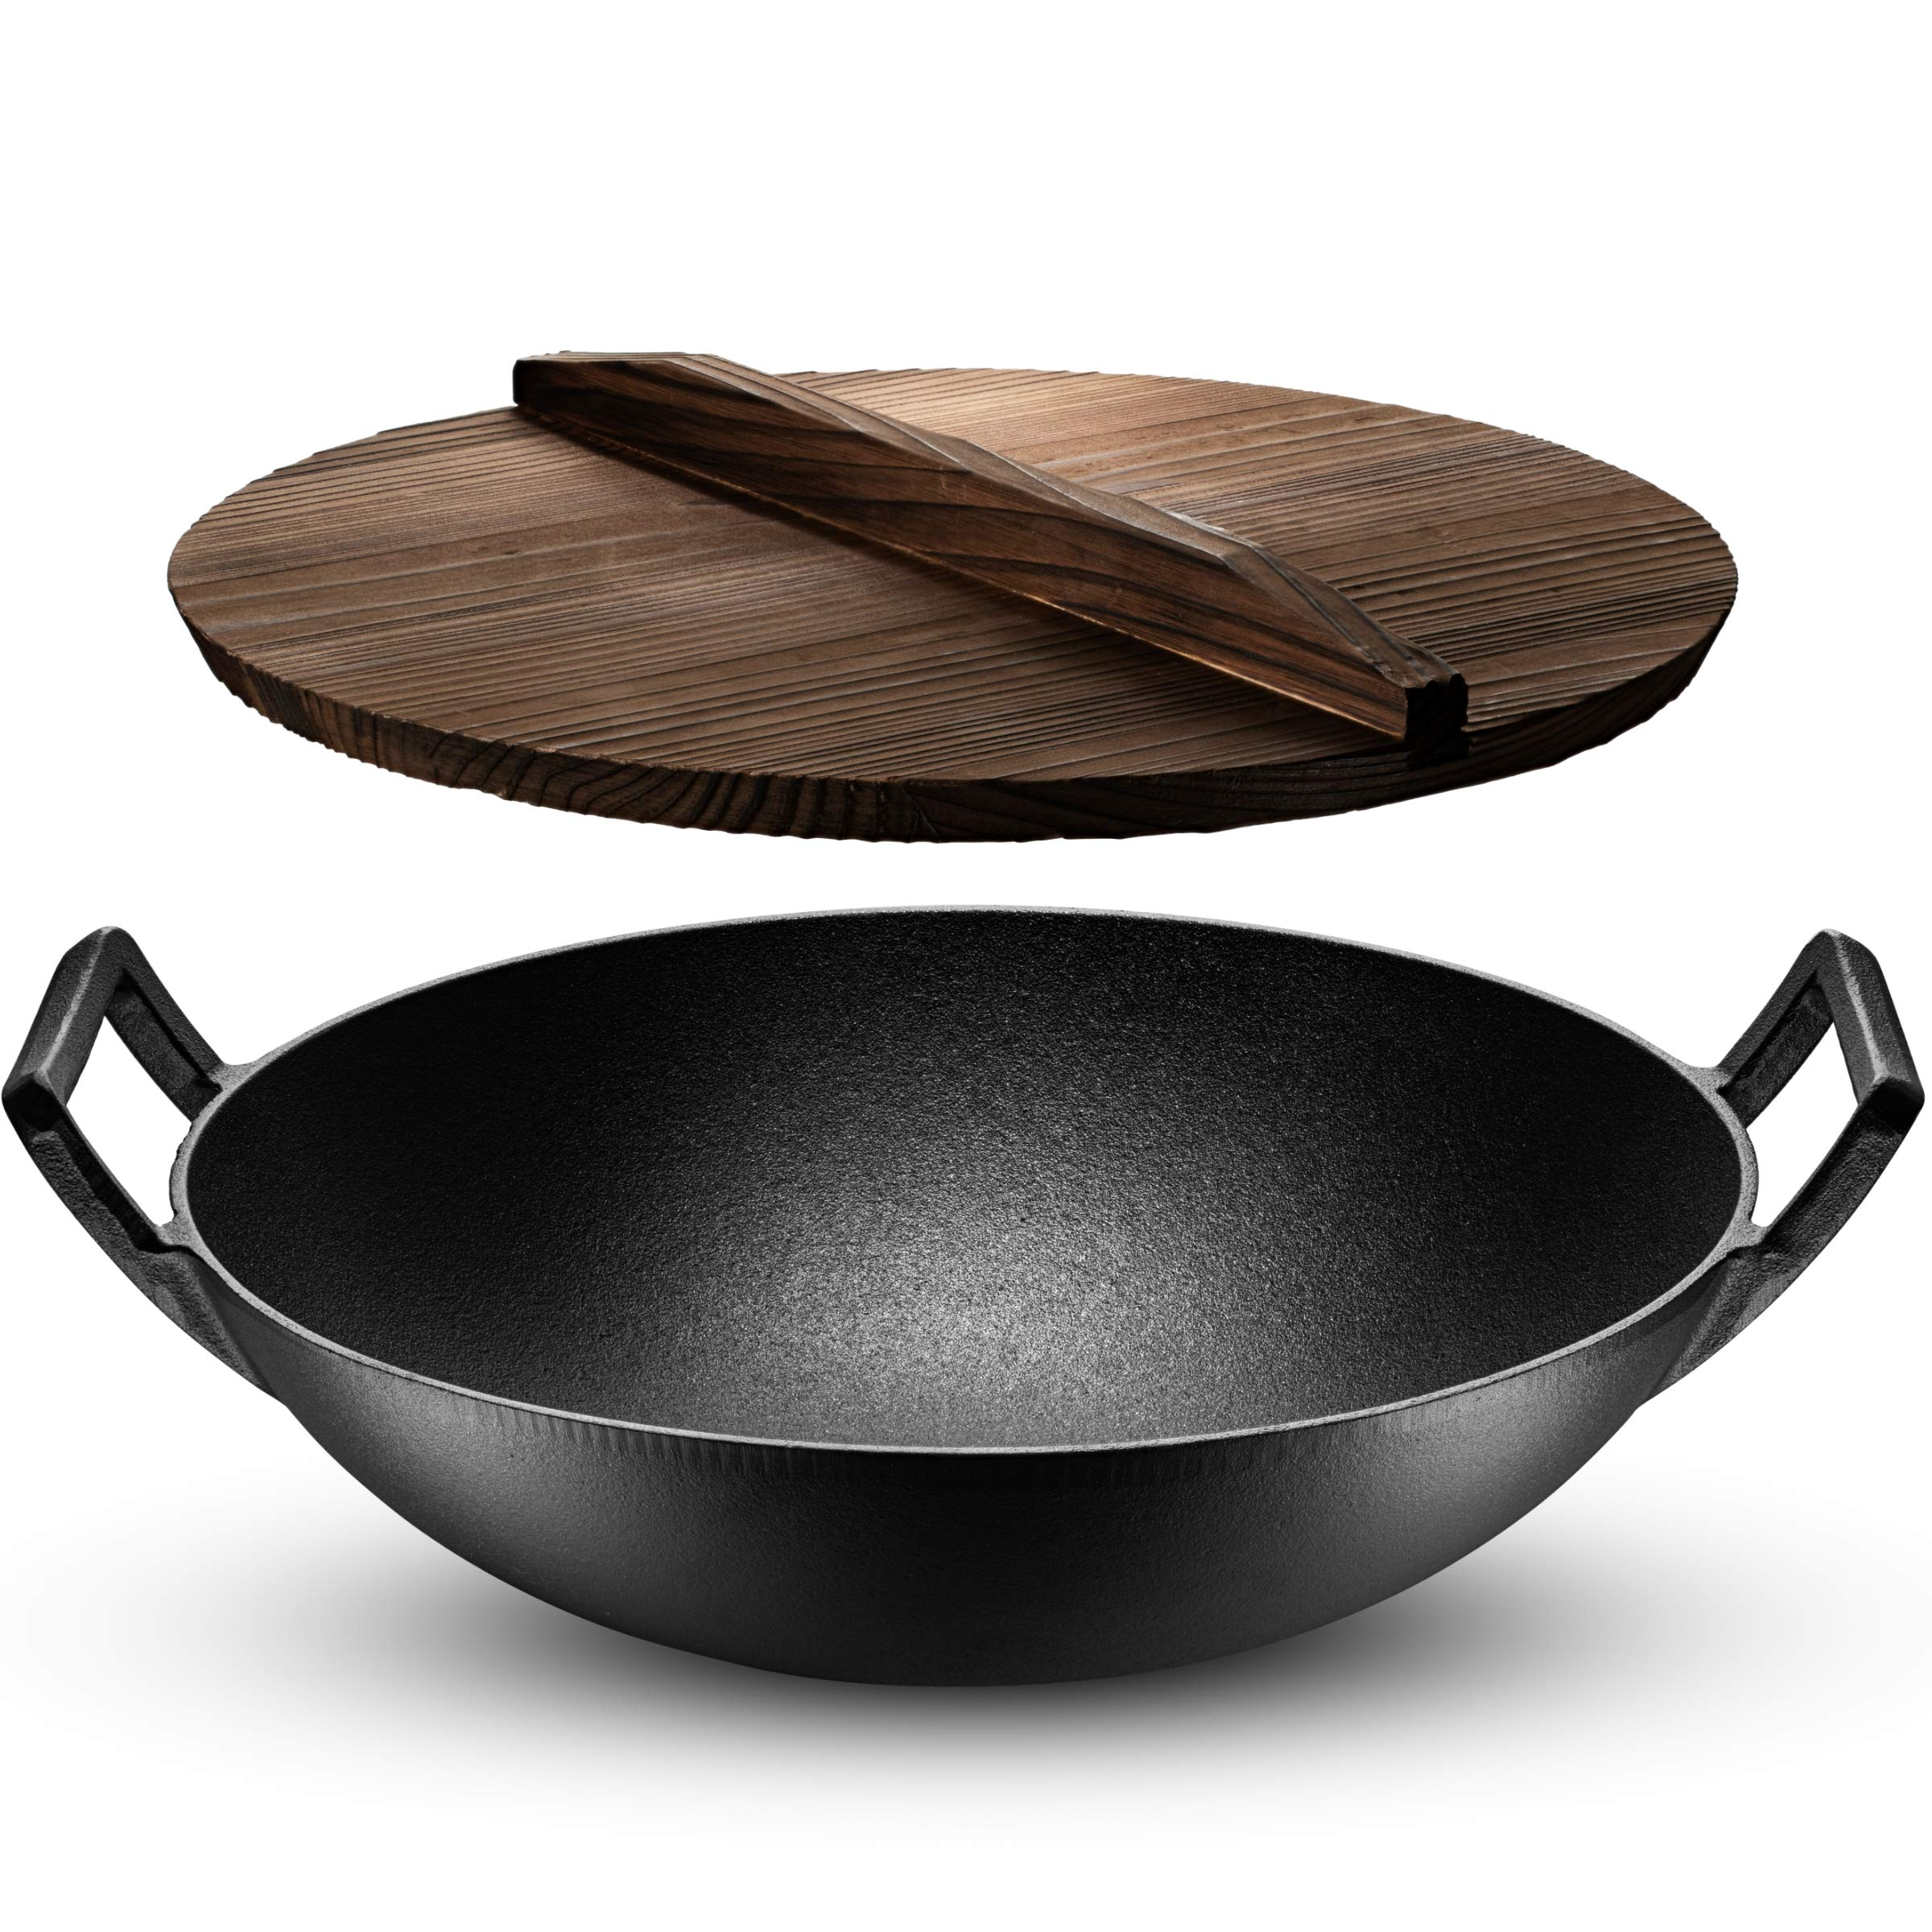 Klee Pre-Seasoned Cast Iron Wok with 2 Handles and Wooden Wok Lid, 14-inch